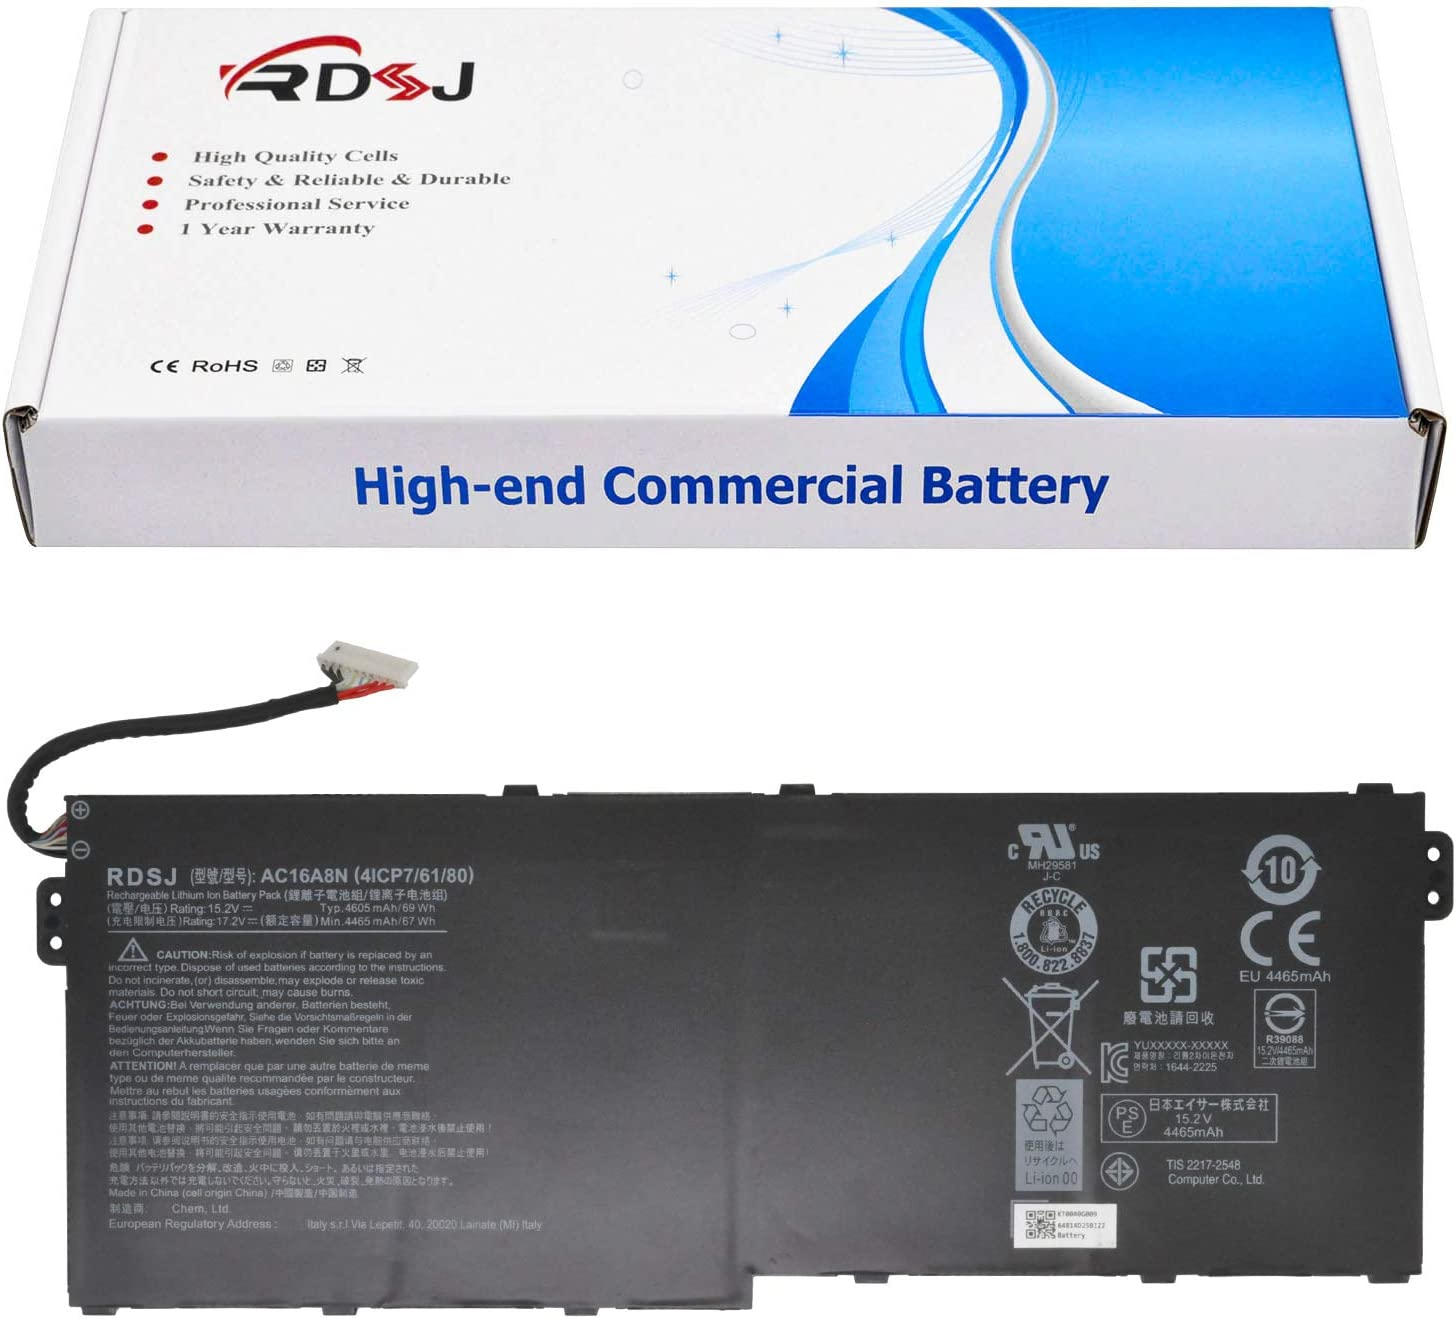 AC16A8N Laptop Battery Compatible with Acer Aspire V15 Nitro BE VN7-593G V17 Nitro BE VN7-791G-792A VN7-792G VN7-792G-74Q4 VN7-793G-706L VN7-793G Series 15.2V 69Wh